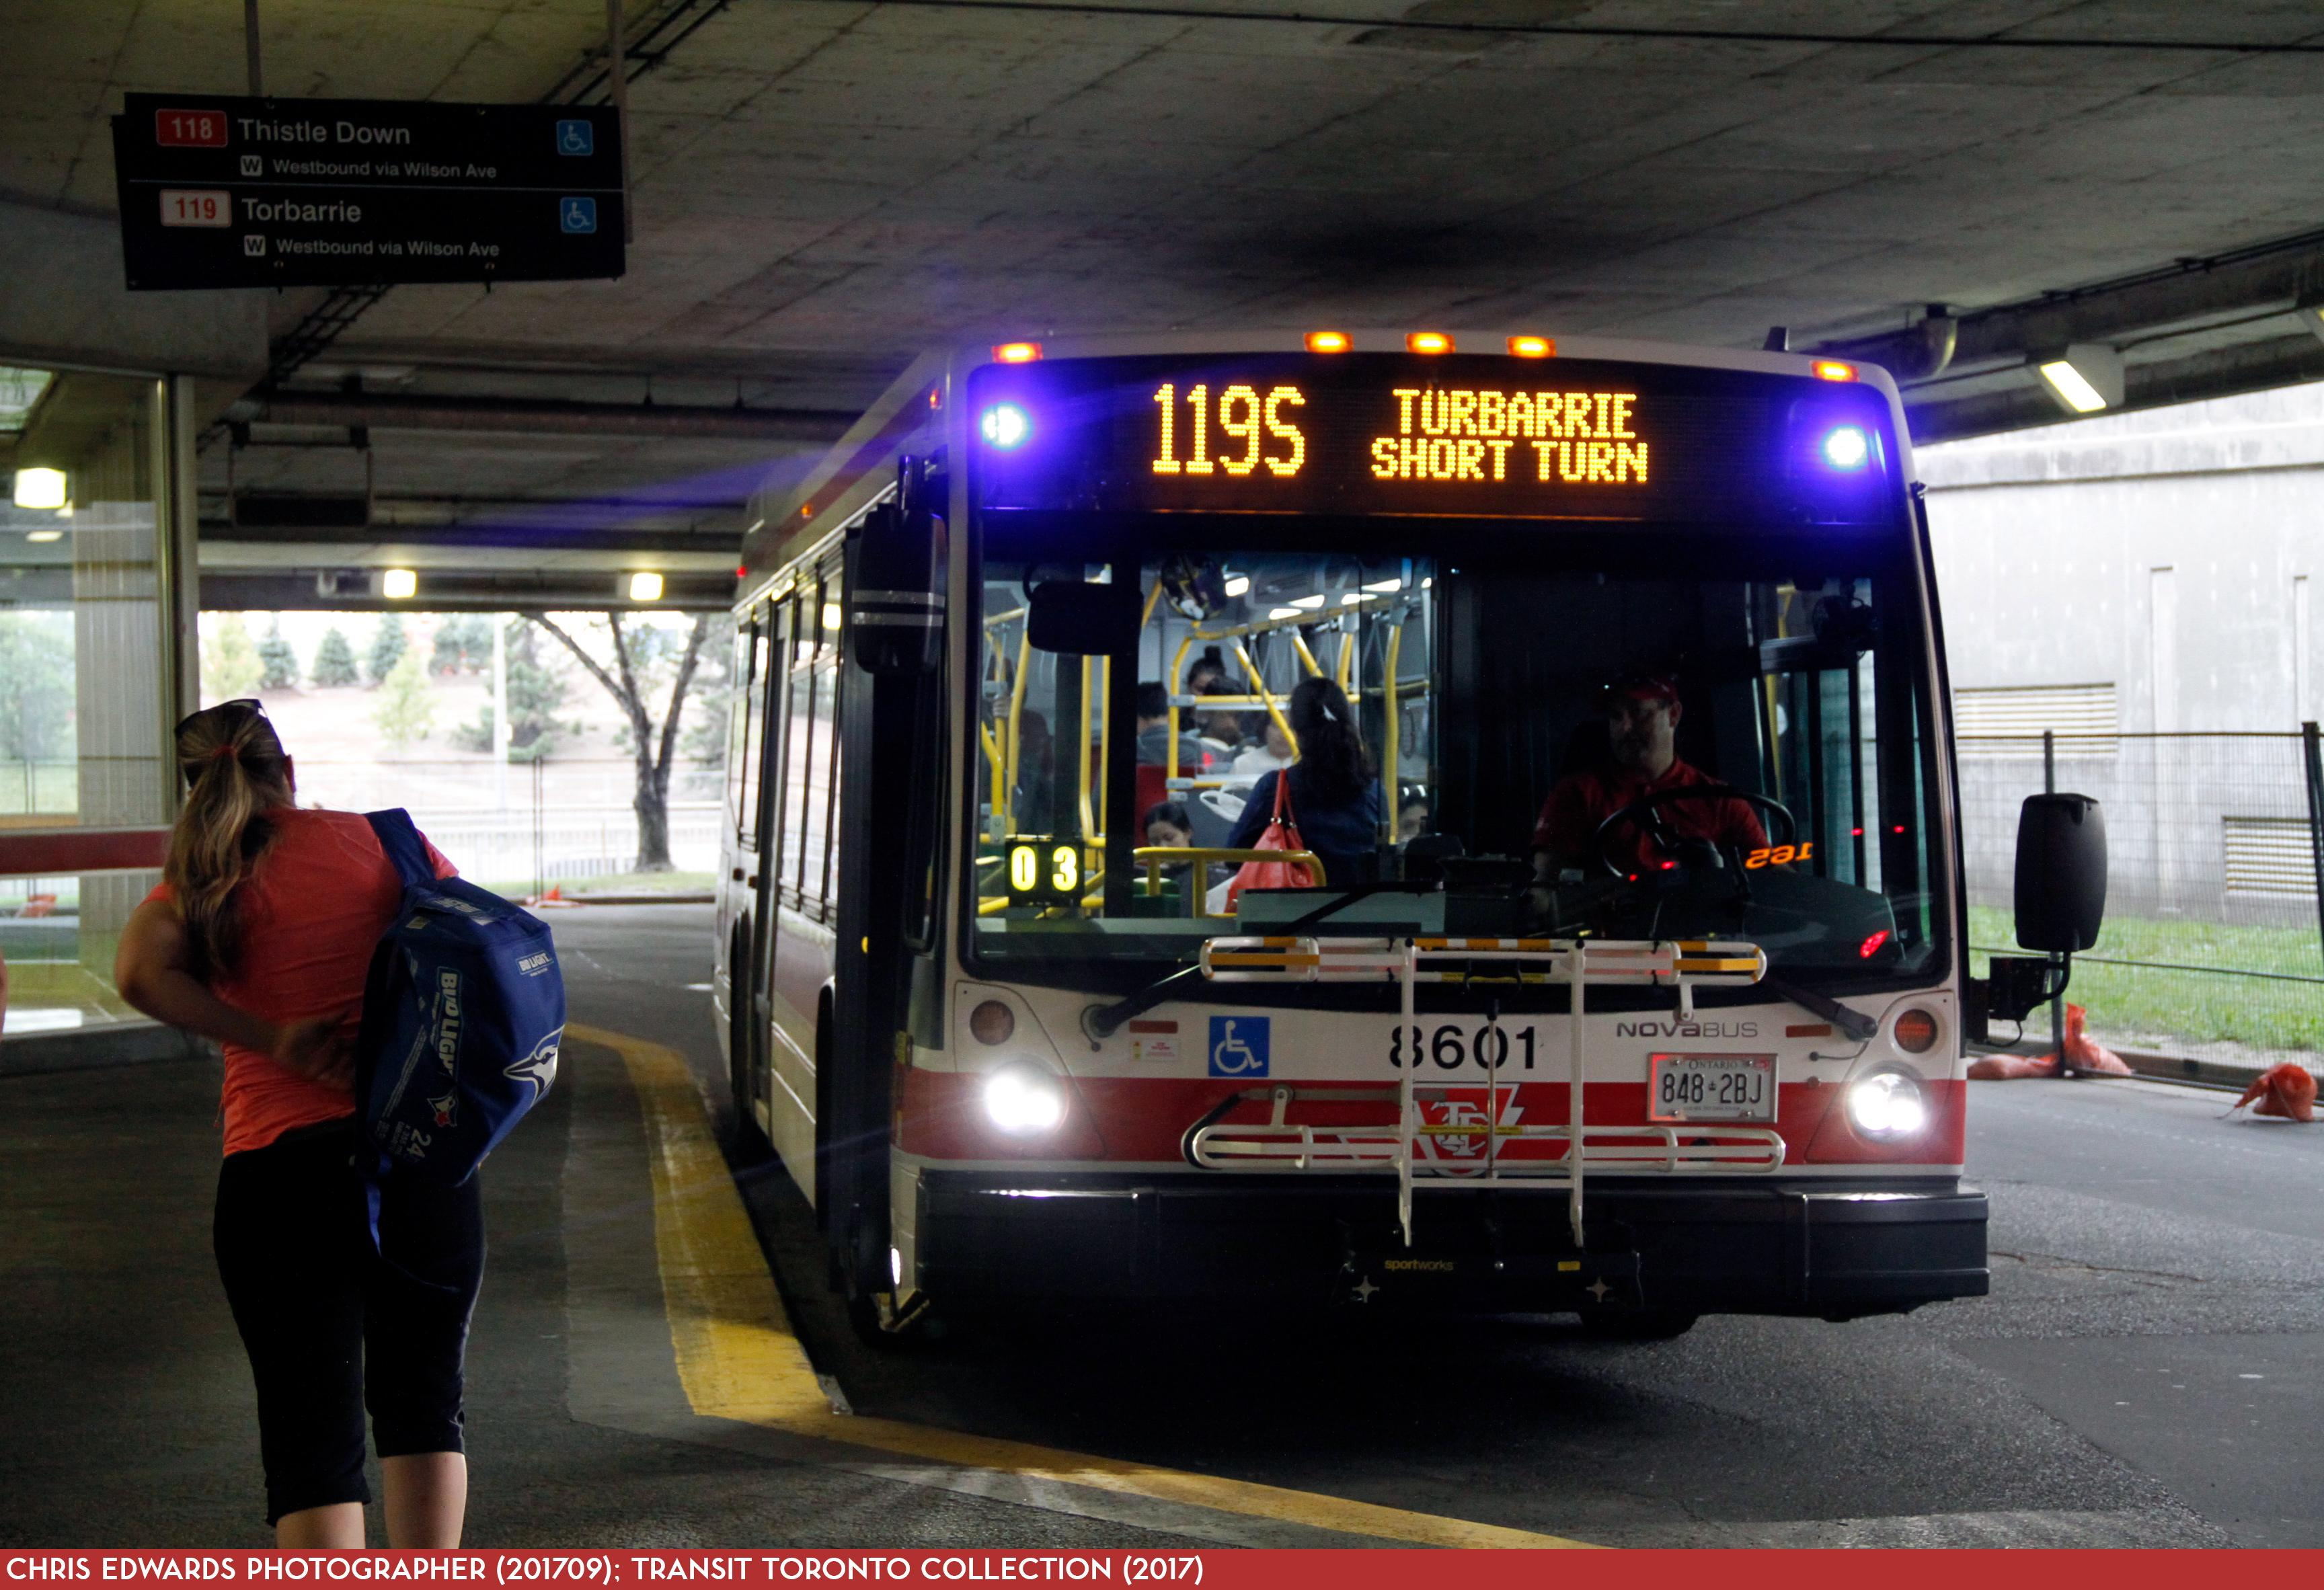 119 torbarrie - transit toronto - surface route histories